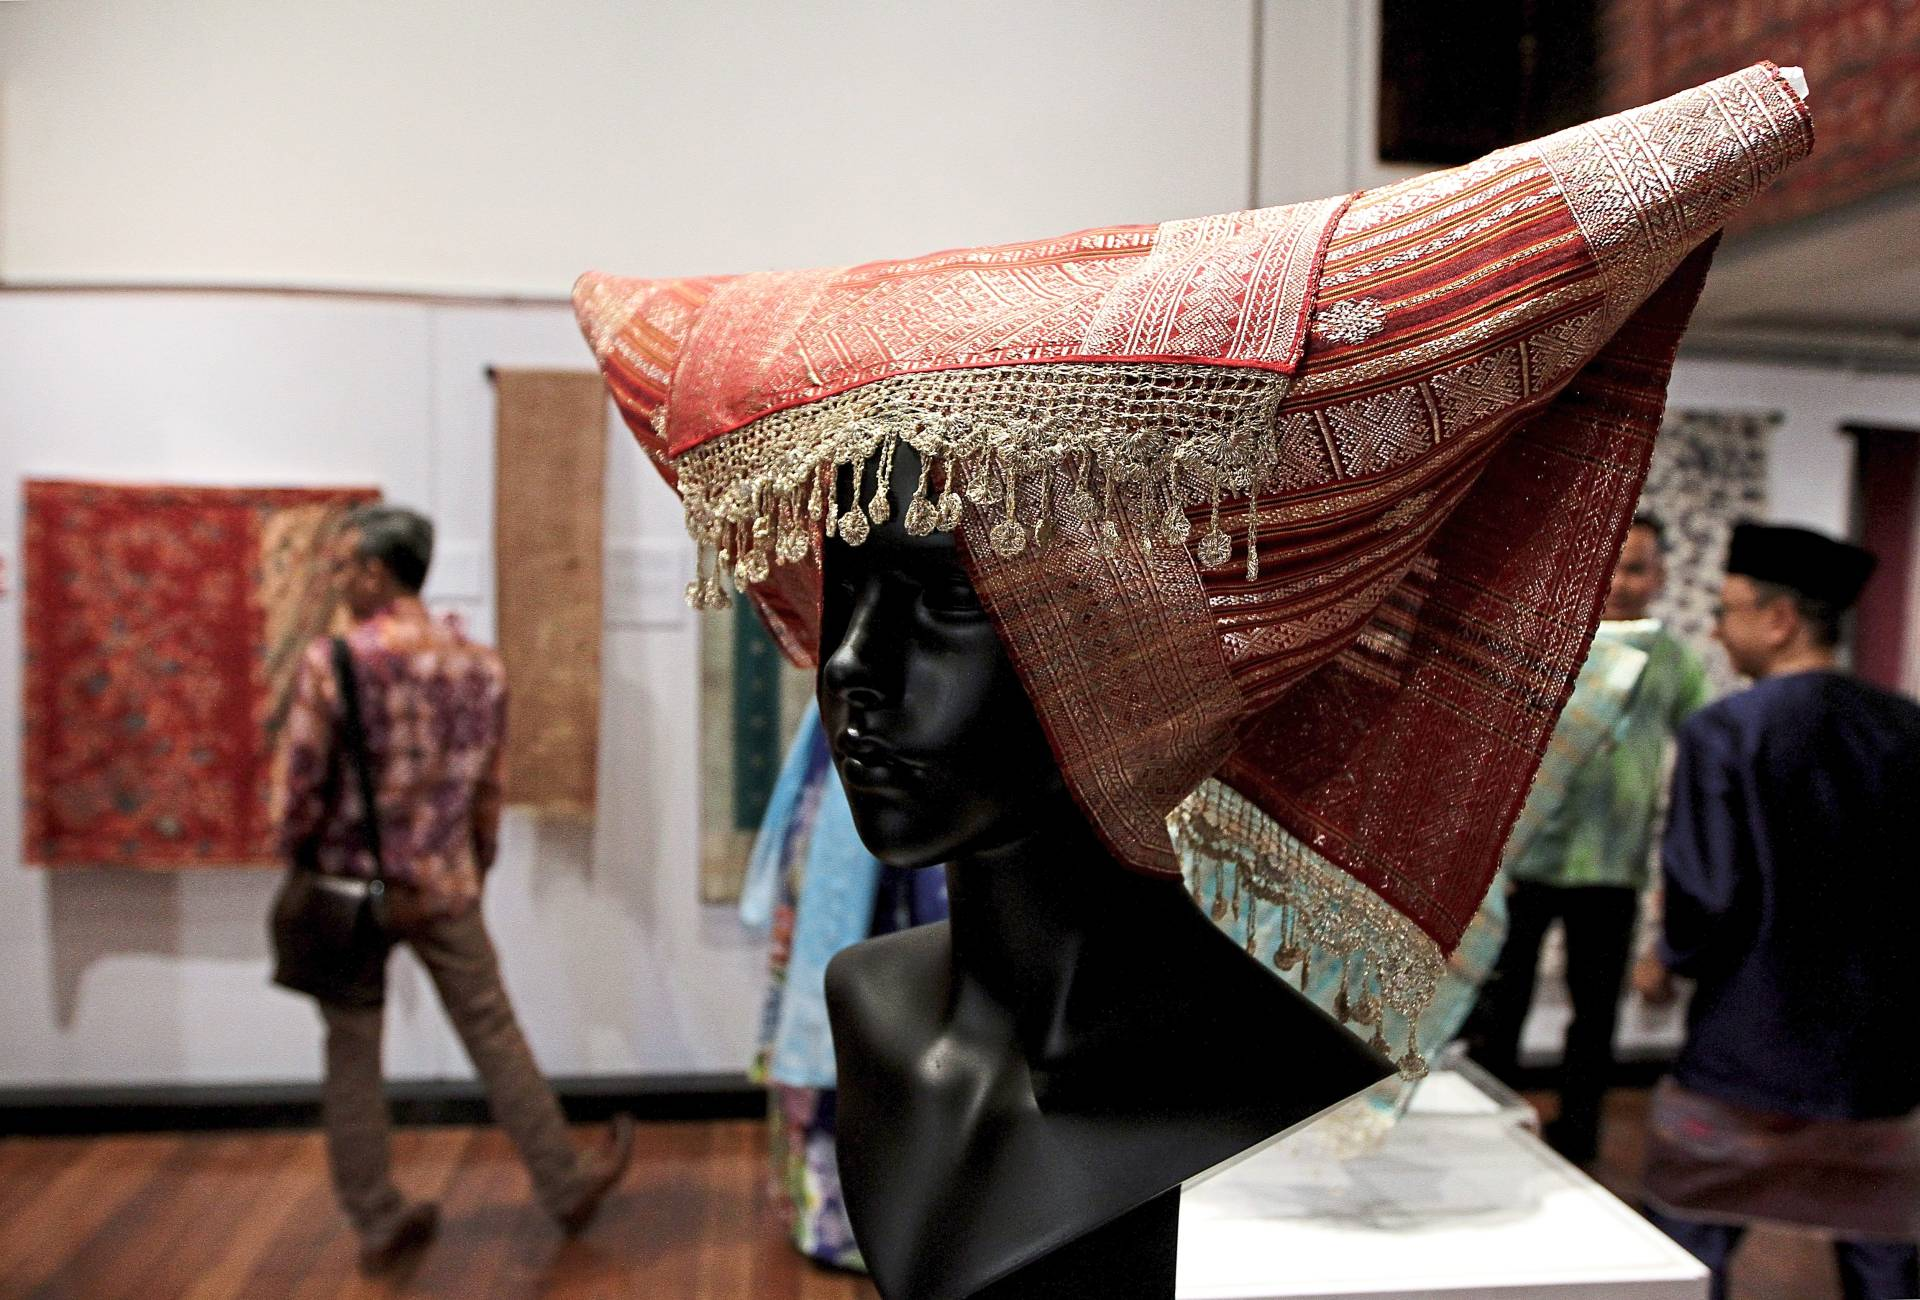 Songket minang shawl with gold thread, a highlight of the exhibition. Photo: Yap Chee Hong/The Star